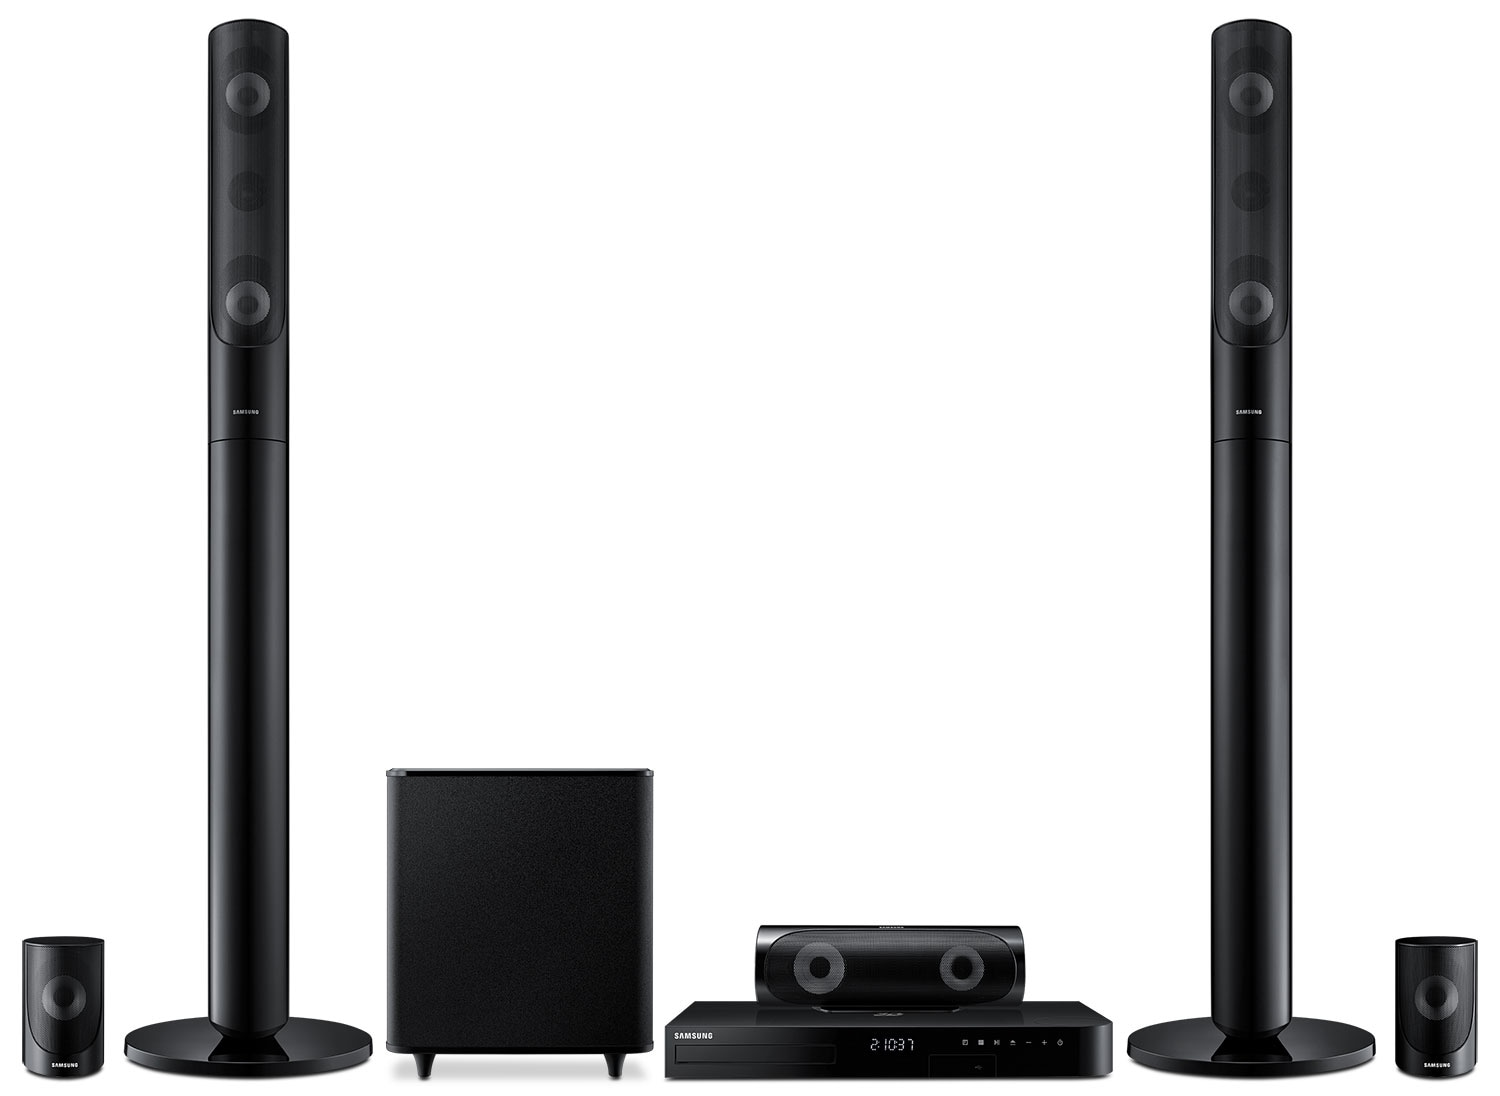 Sound Systems - Samsung 5.1 Channel Home Theatre System